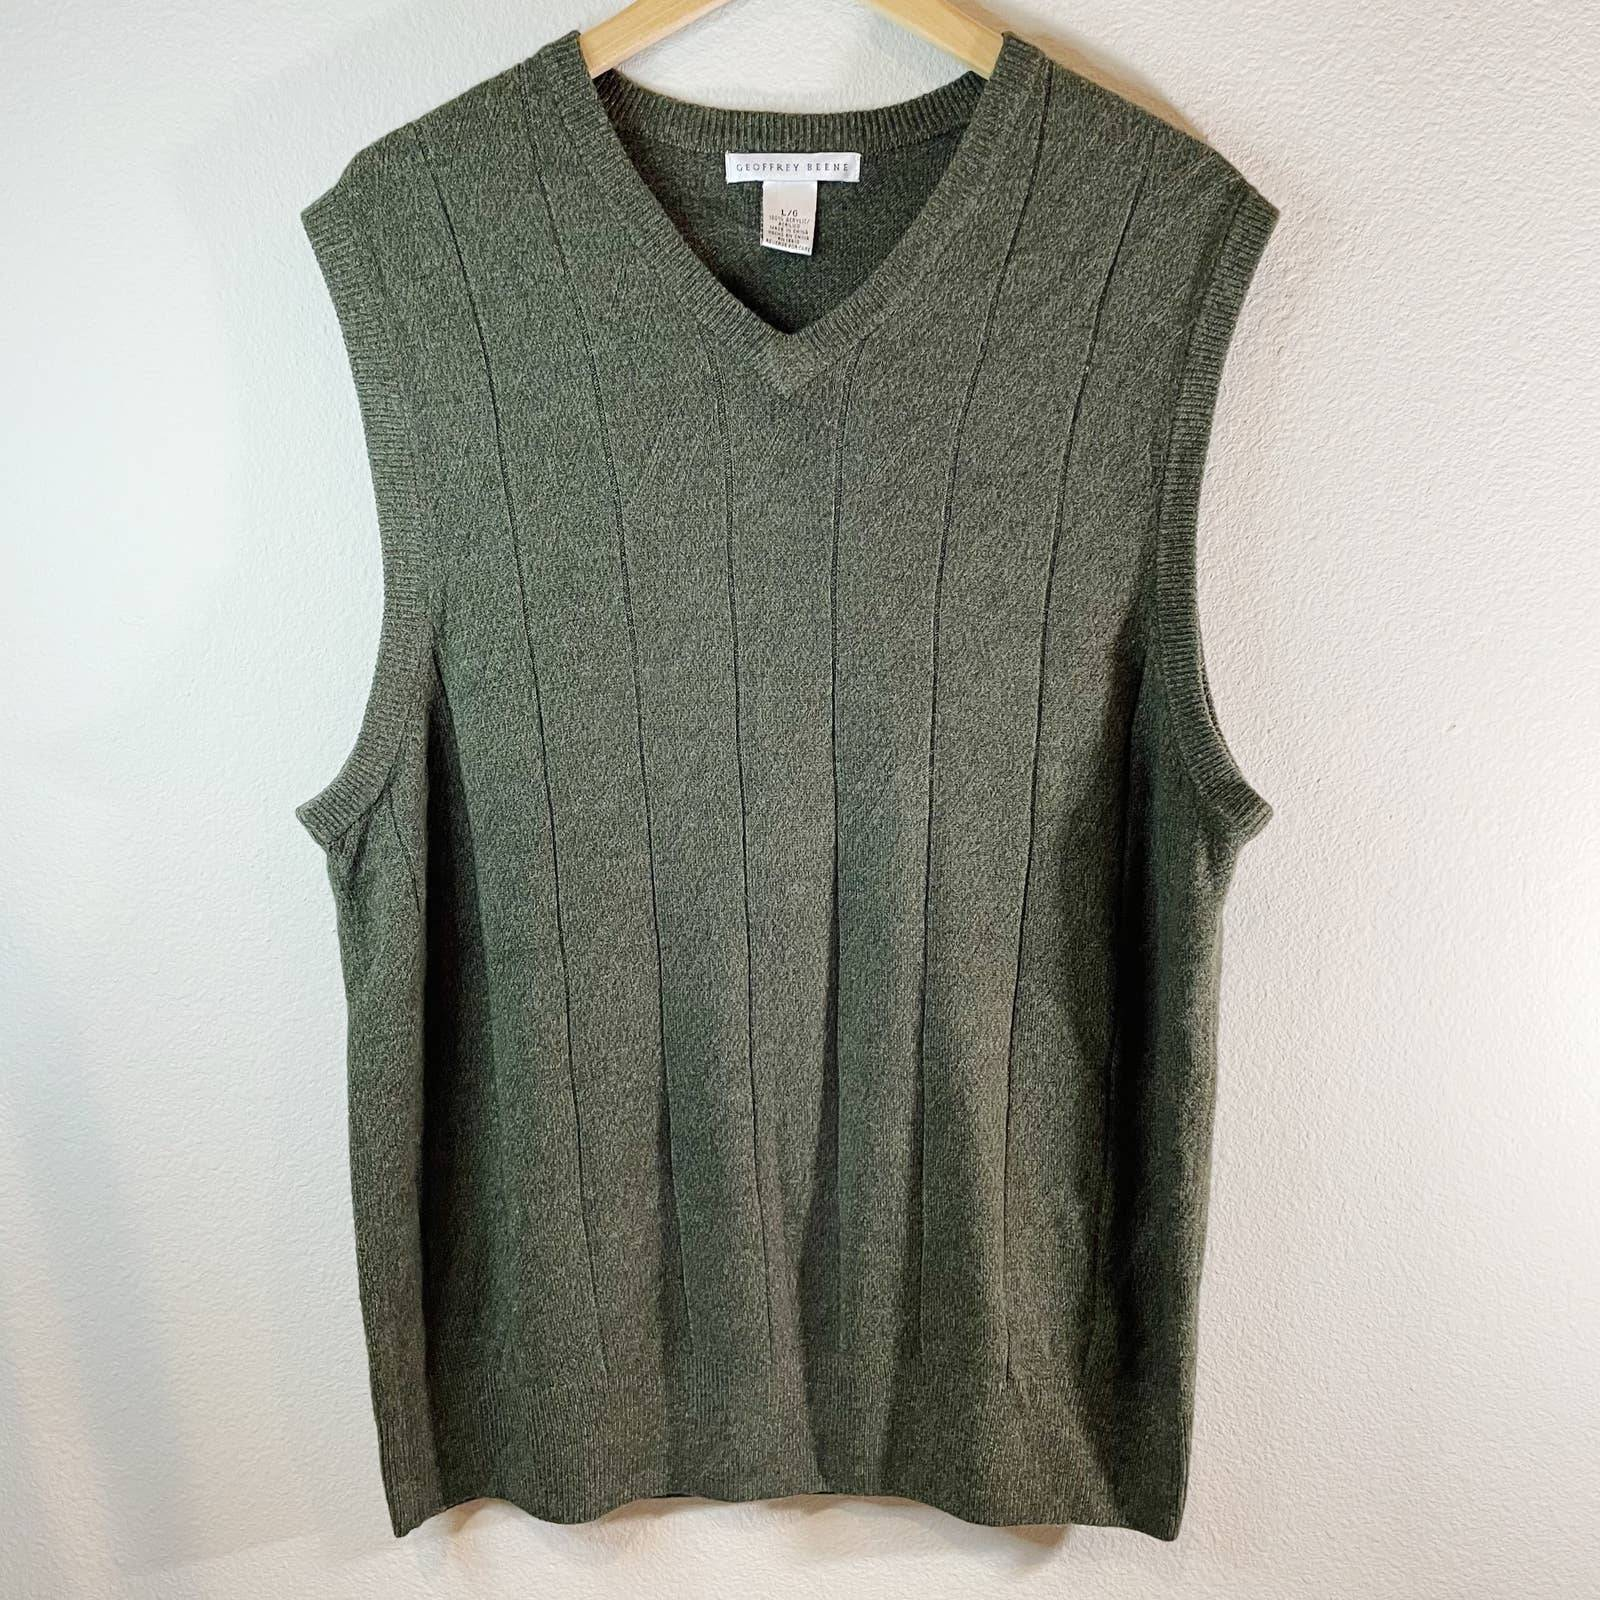 Geoffrey Beene Sweater Vest Green Large